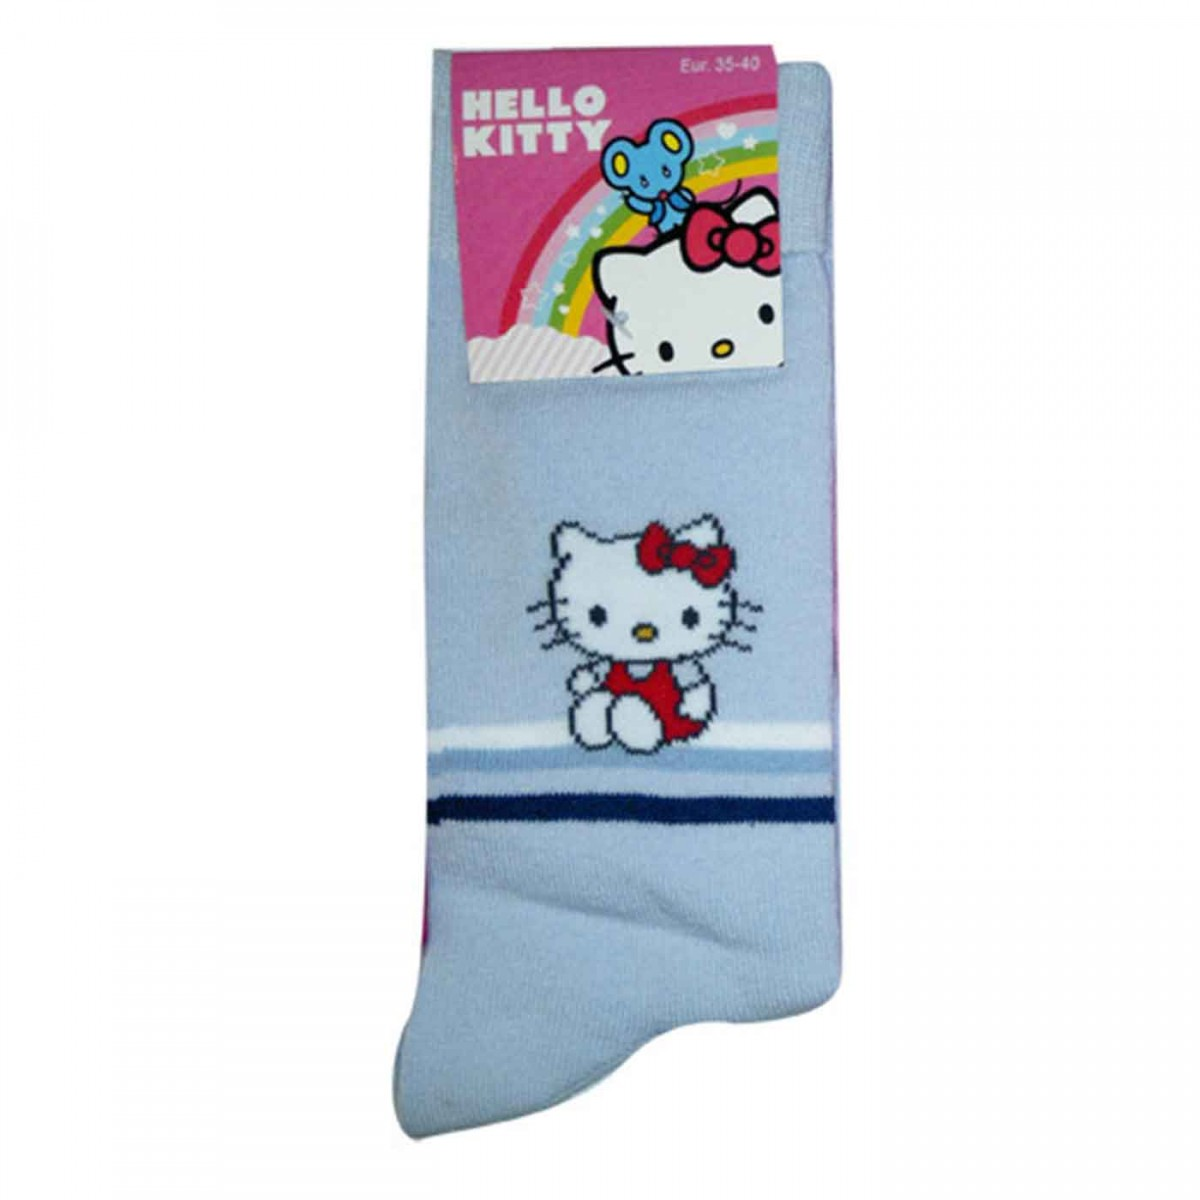 Hello Kitty Socks lightblue